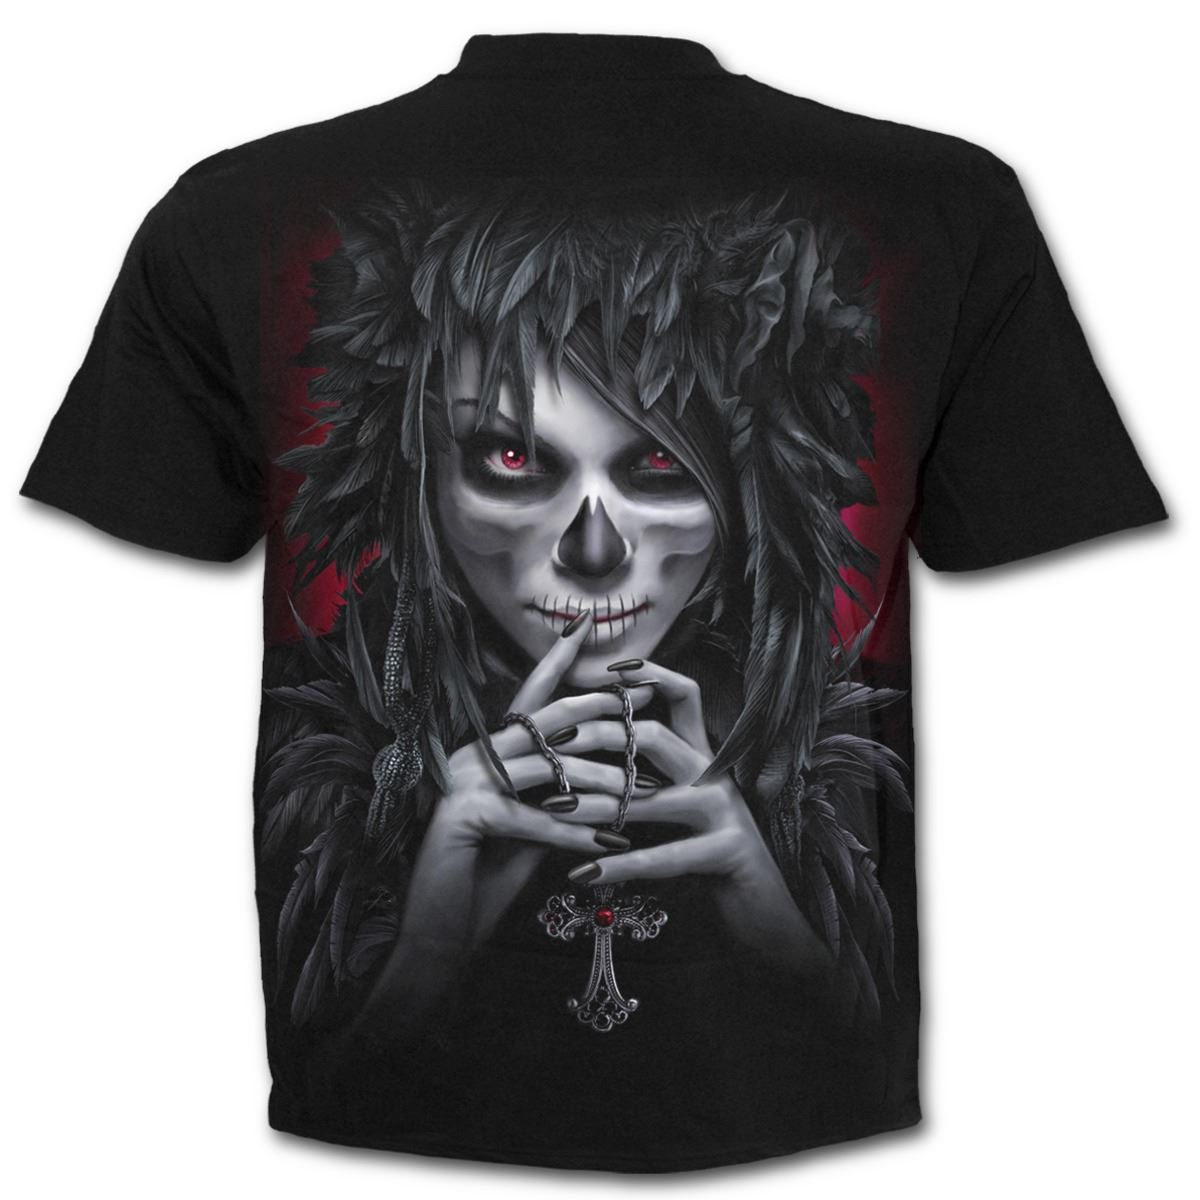 Spiral-Direct-Day-Of-The-Goth-Skeleton-Zombie-Black-Short-Sleeved-T-Shirt thumbnail 10